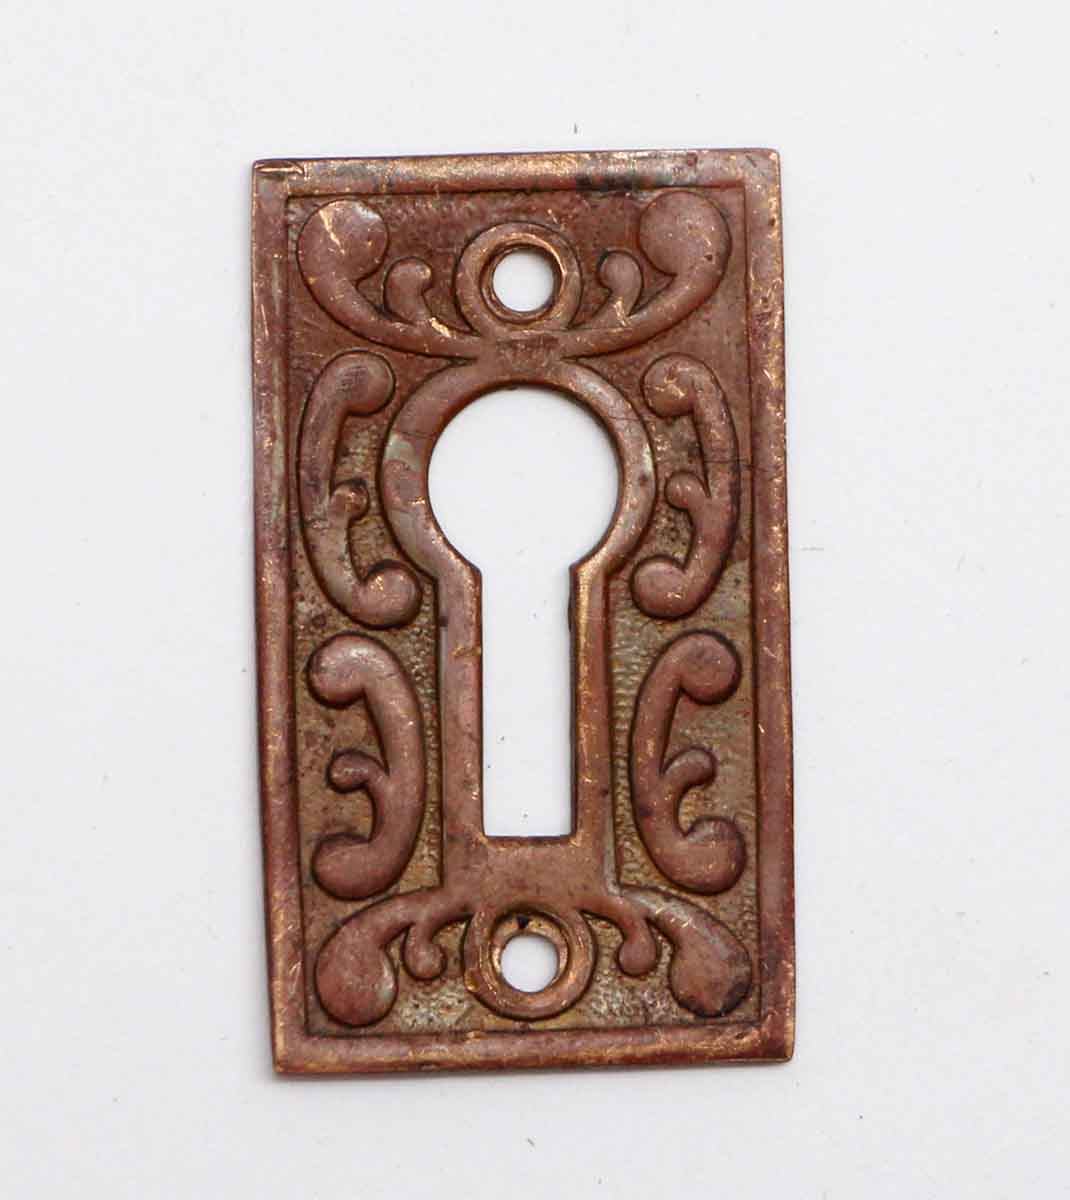 Keyhole Cover Antique Brass